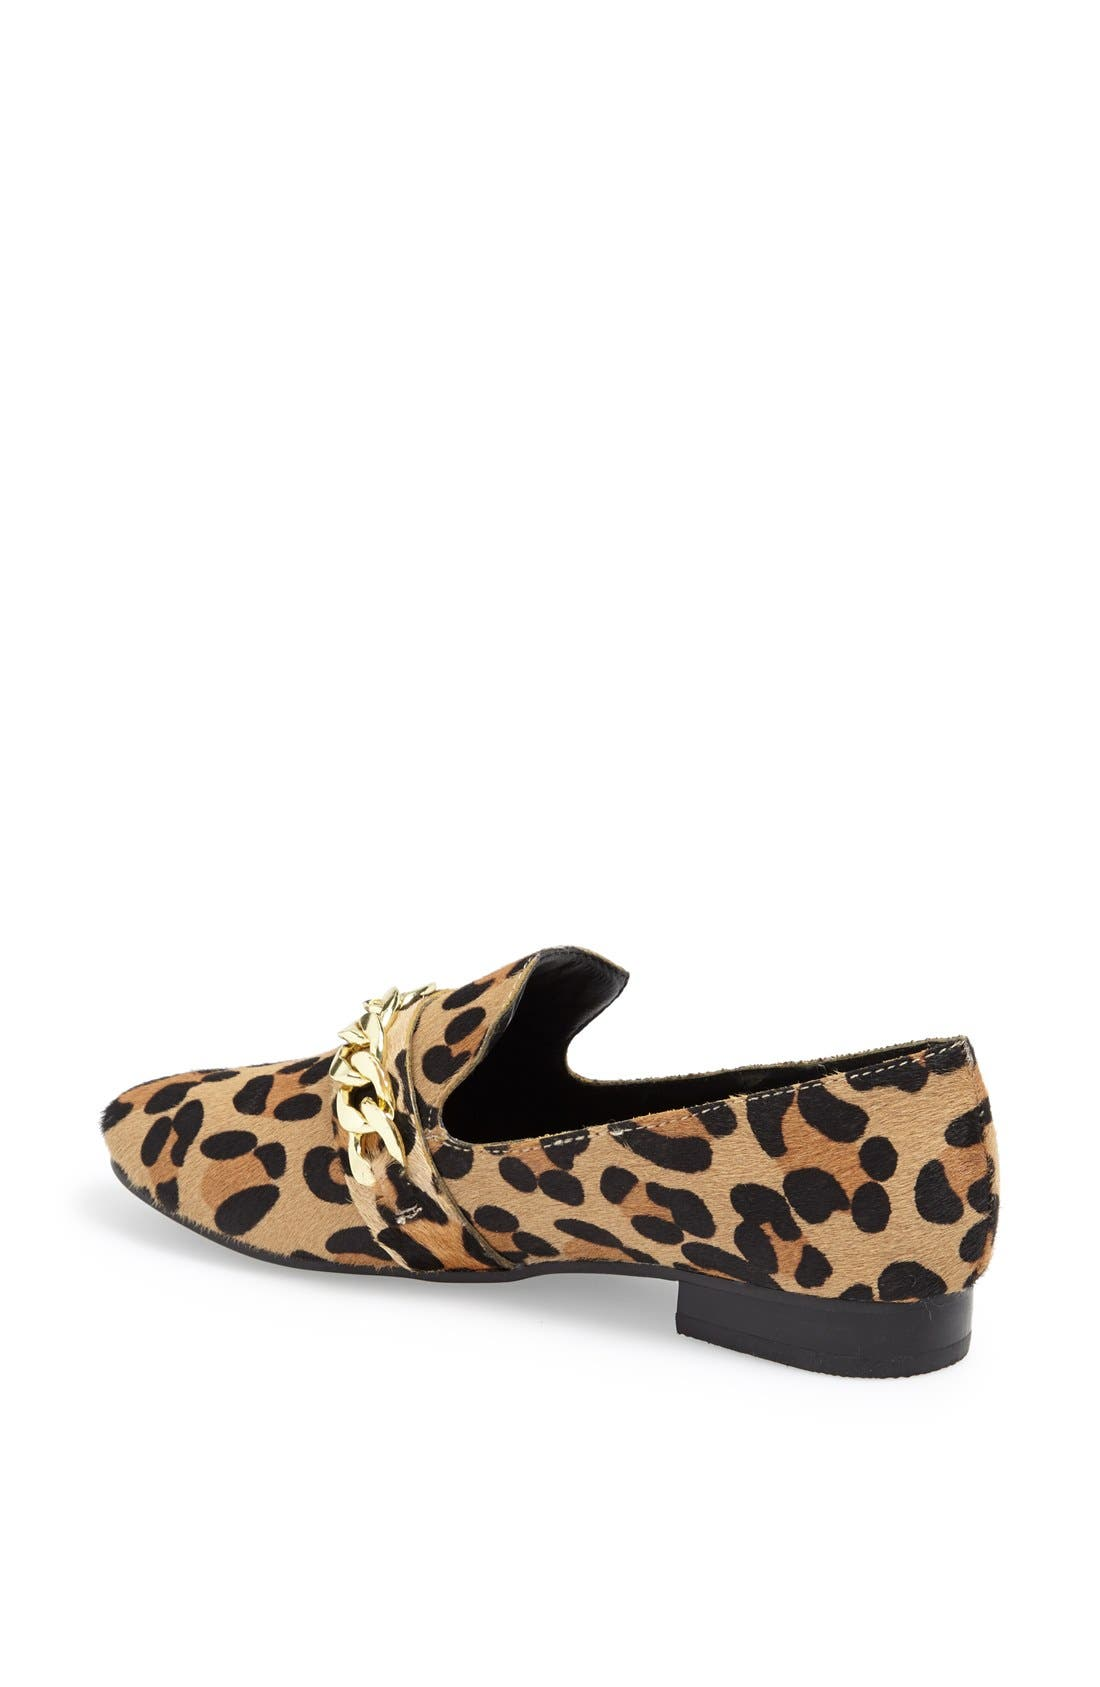 Alternate Image 2  - Steve Madden 'Chaingng' Calf Hair Flat